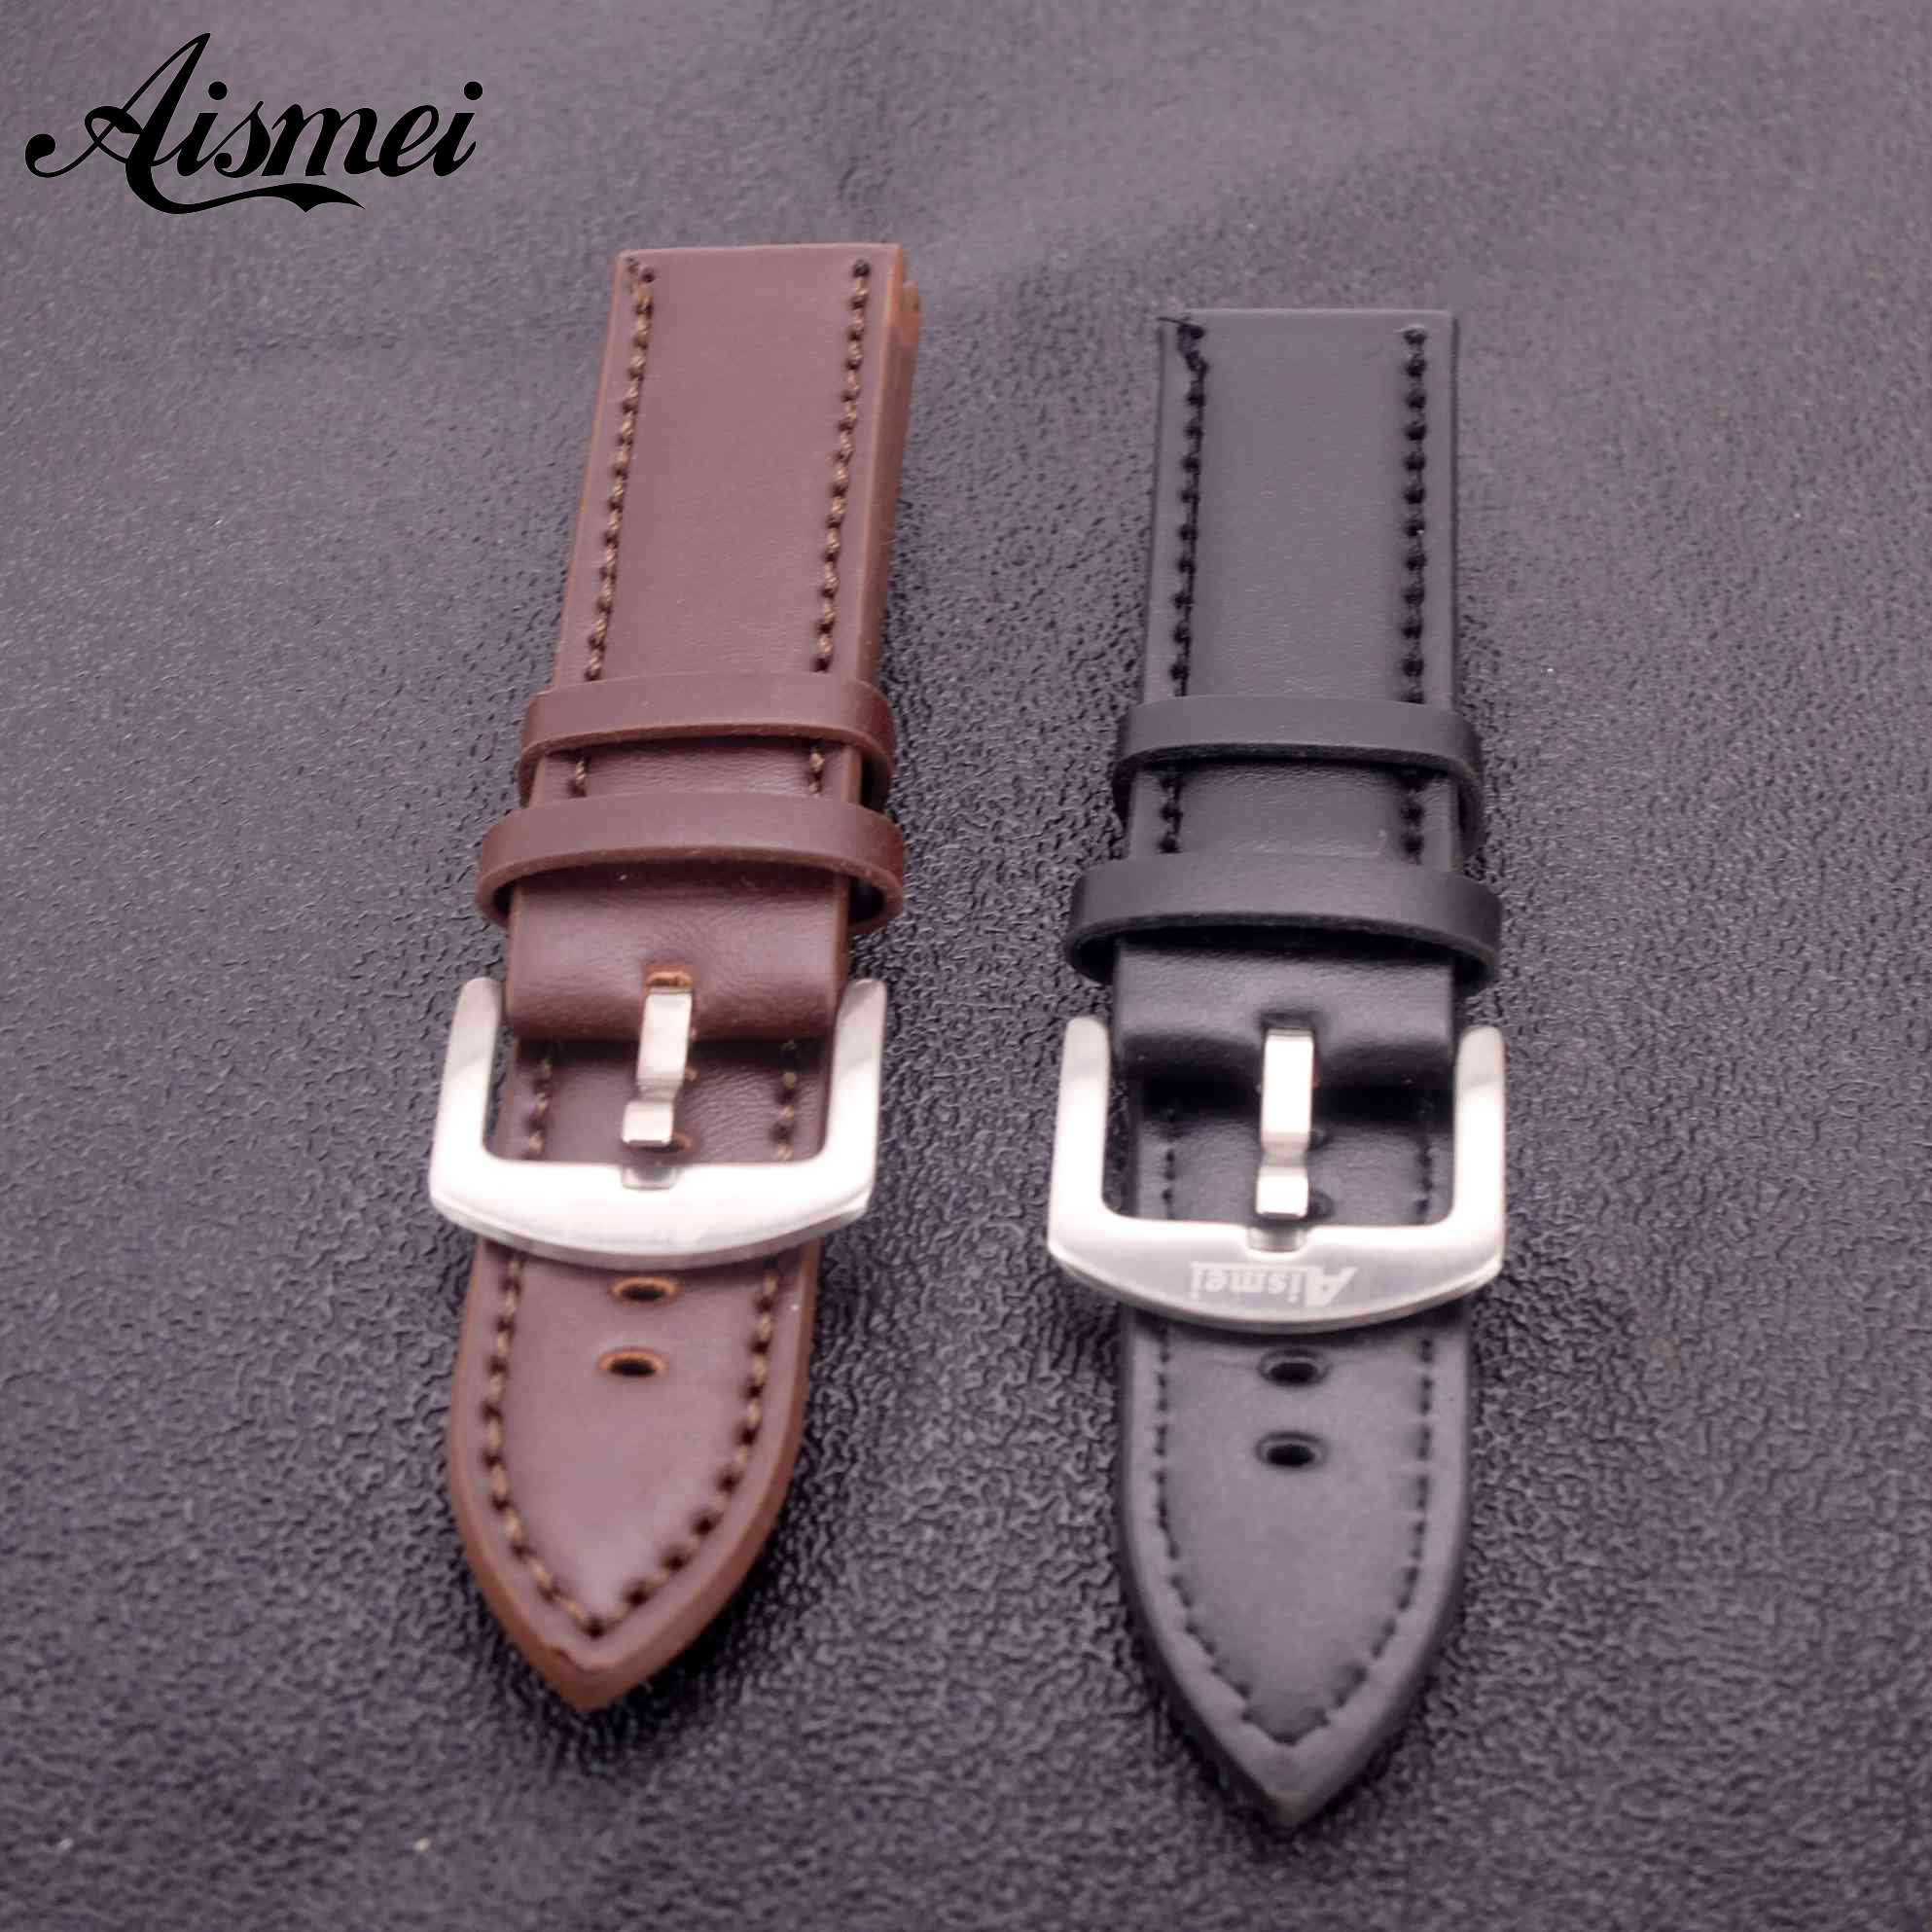 Aismei Men Watch Band Thick PU Leather Straps 22mm Watchbands High Quality Vintage silver Pin Buckle bands Watch Accessories folding buckle watchbands men shigh quality design straps 24mm leather smooth watch band with silver deployment clasp promotion